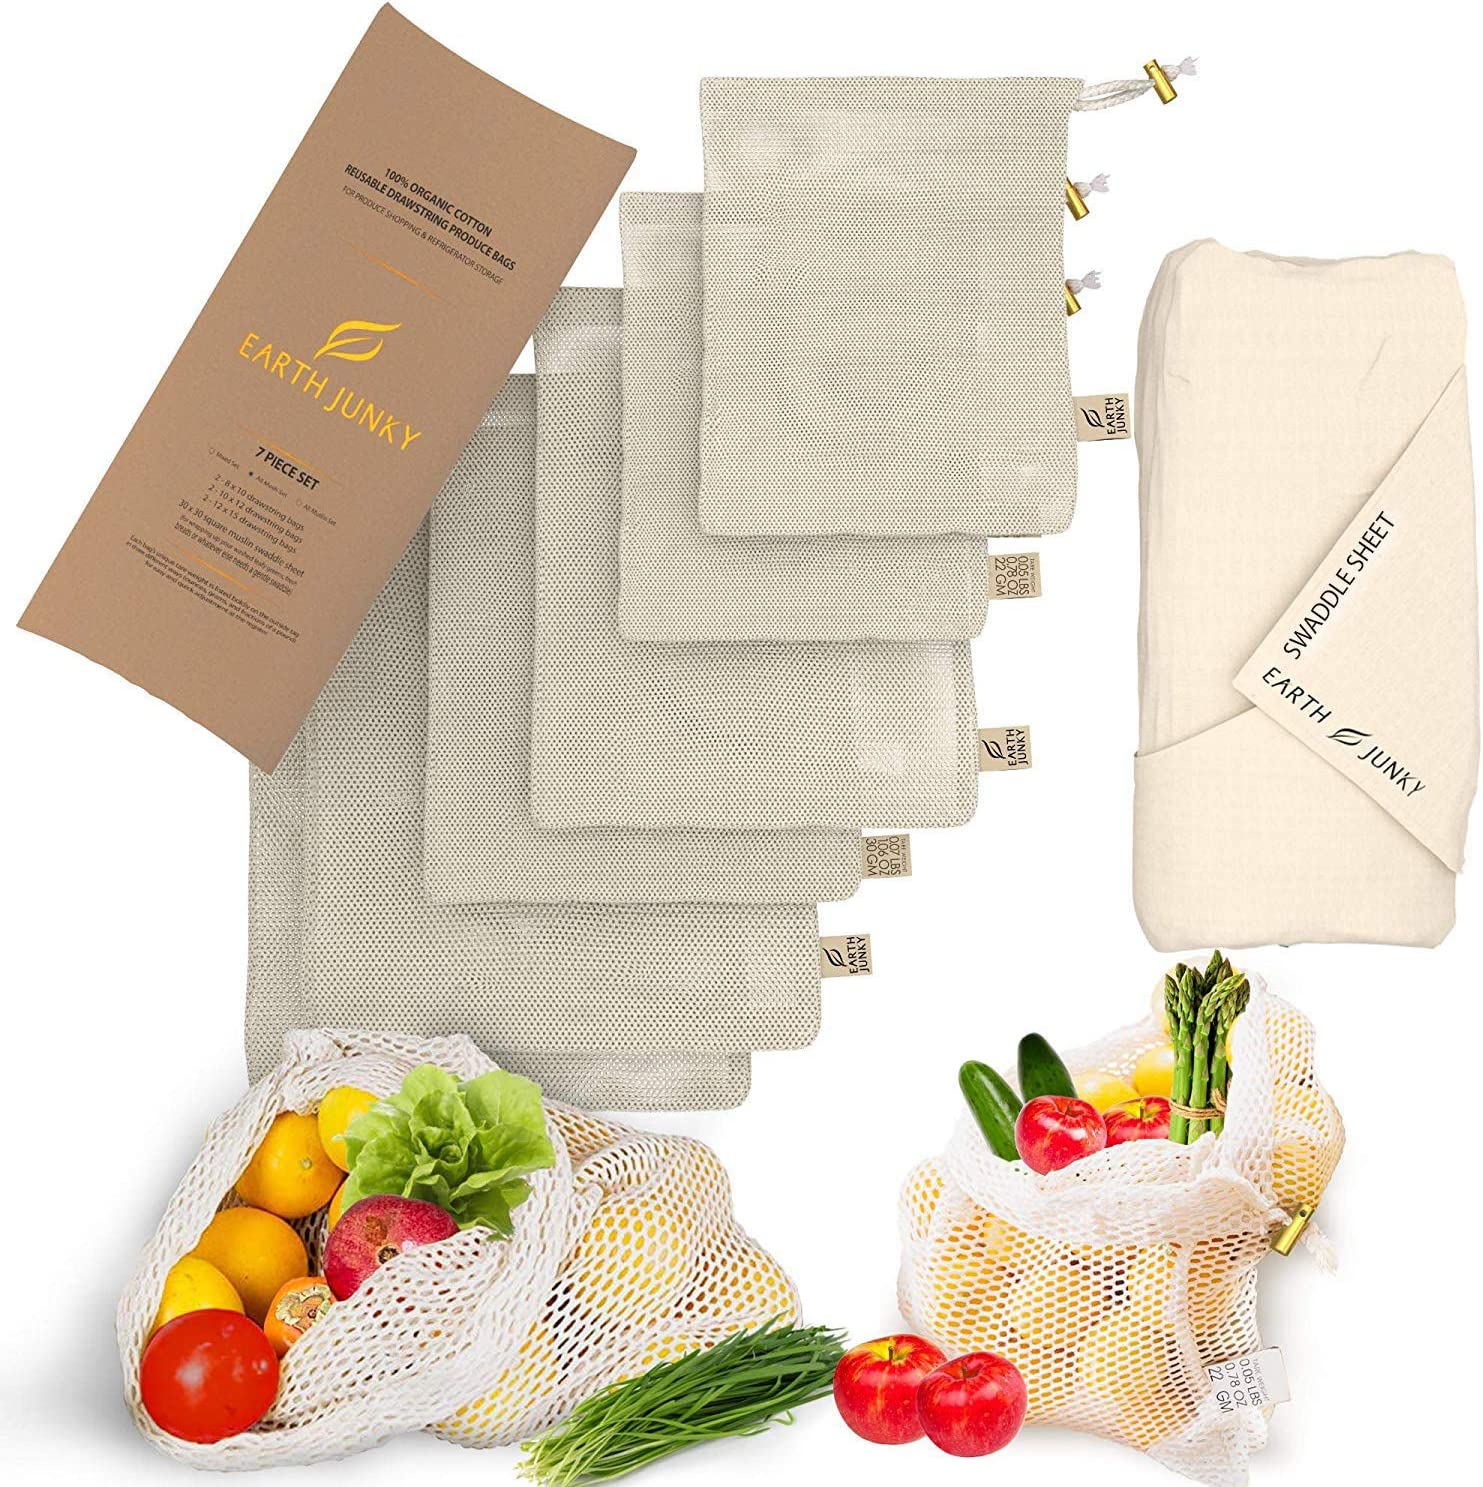 Organic Reusable Mesh Produce Bags - Washable Mesh Vegetable Bags for Fruit and Veg - 6 Food Grocery Bags and 1 Bonus Greens Swaddle Sheet - Eco Friendly Drawstring Bag Set - S, M, L